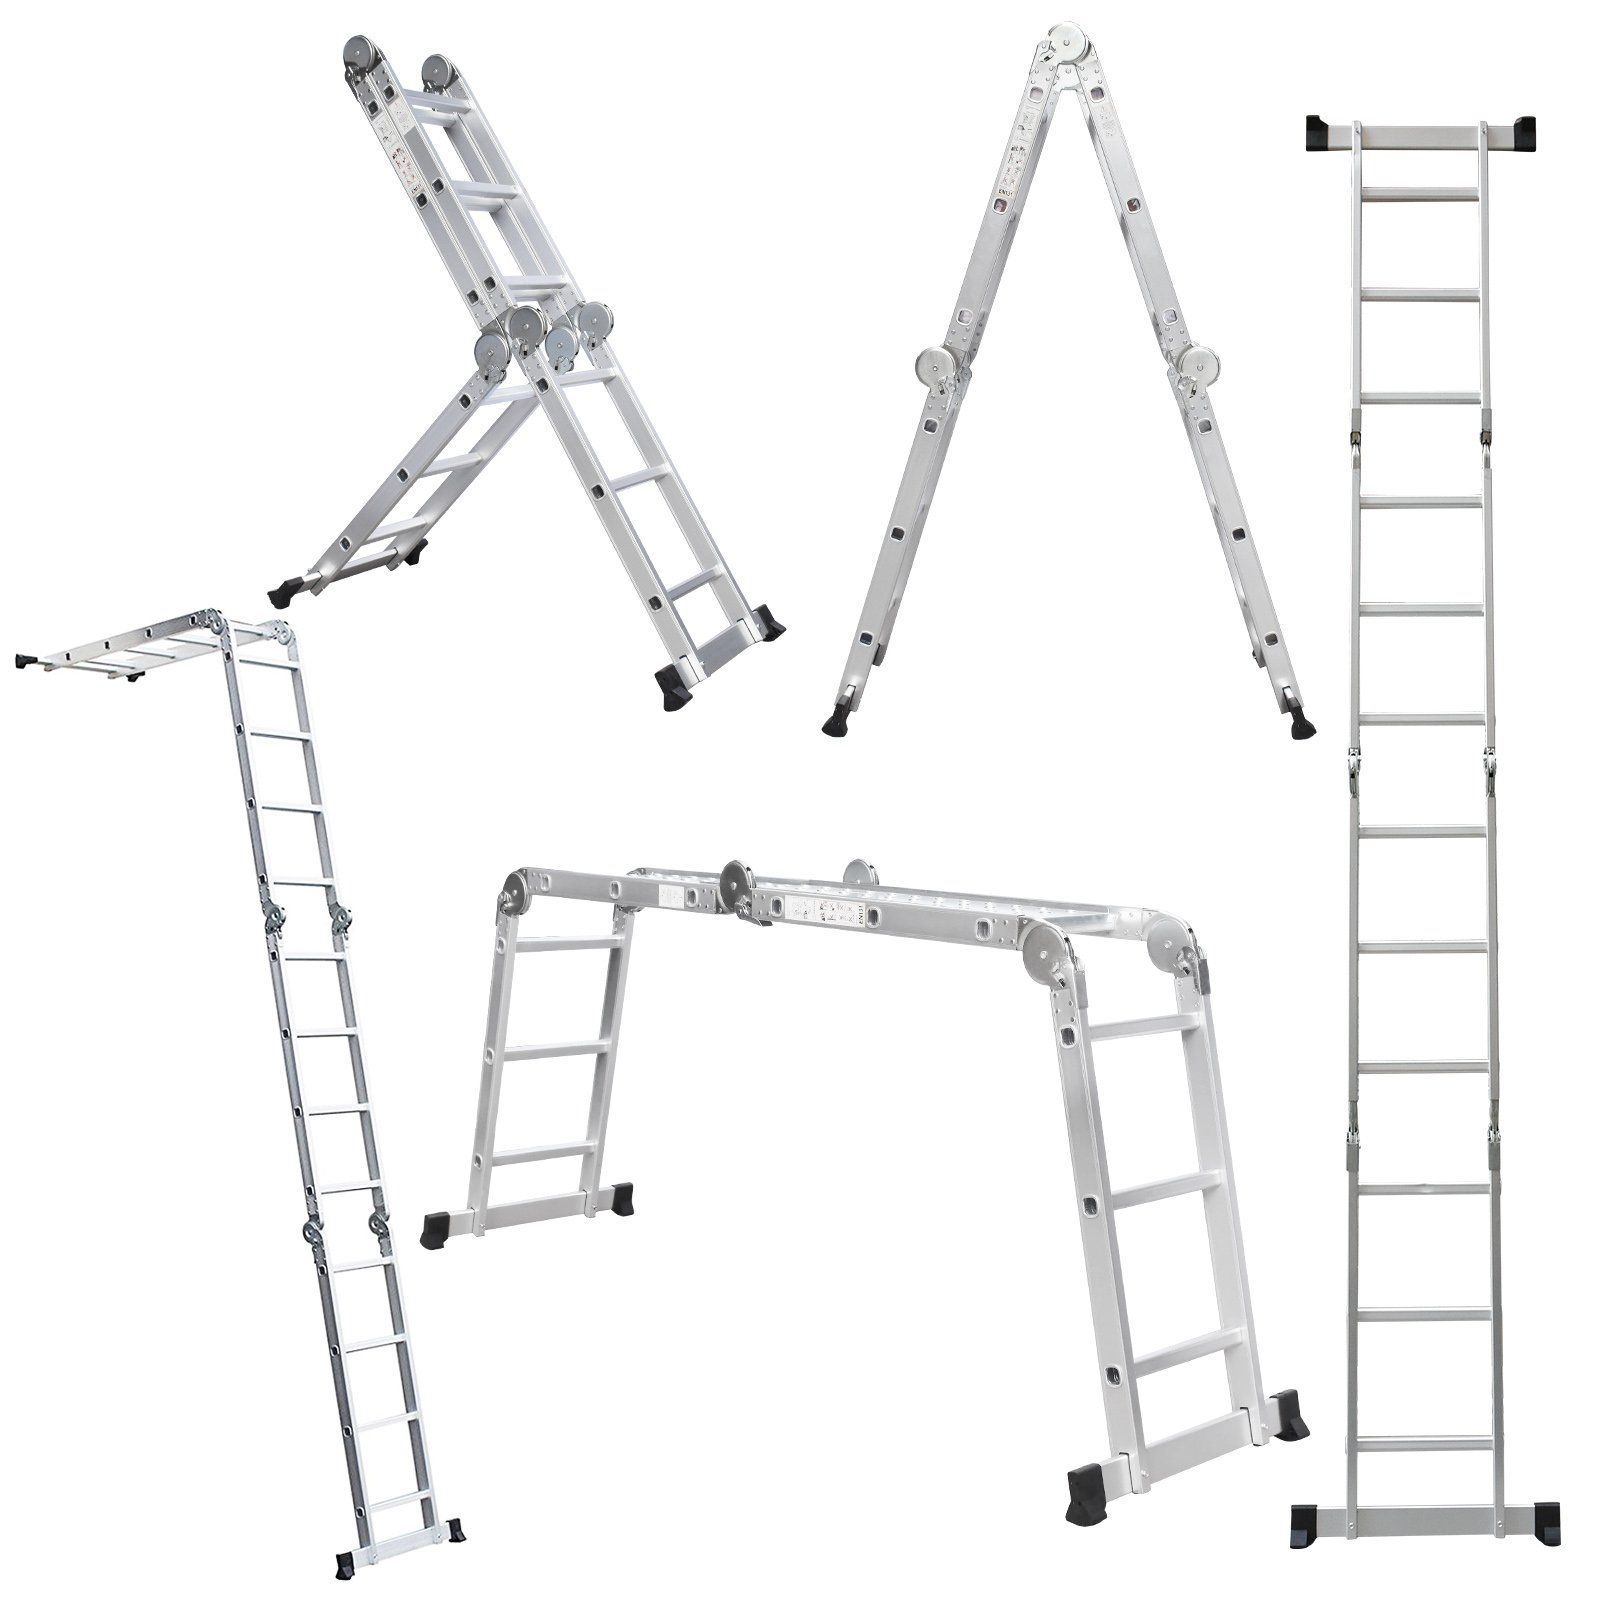 Extension Length 15.5ft 330lb Capacity Aluminum Multi Purpose Extension Ladder 4x3 Steps with Safety Locking Hinges Folding Ladders Also Used as Work Platform